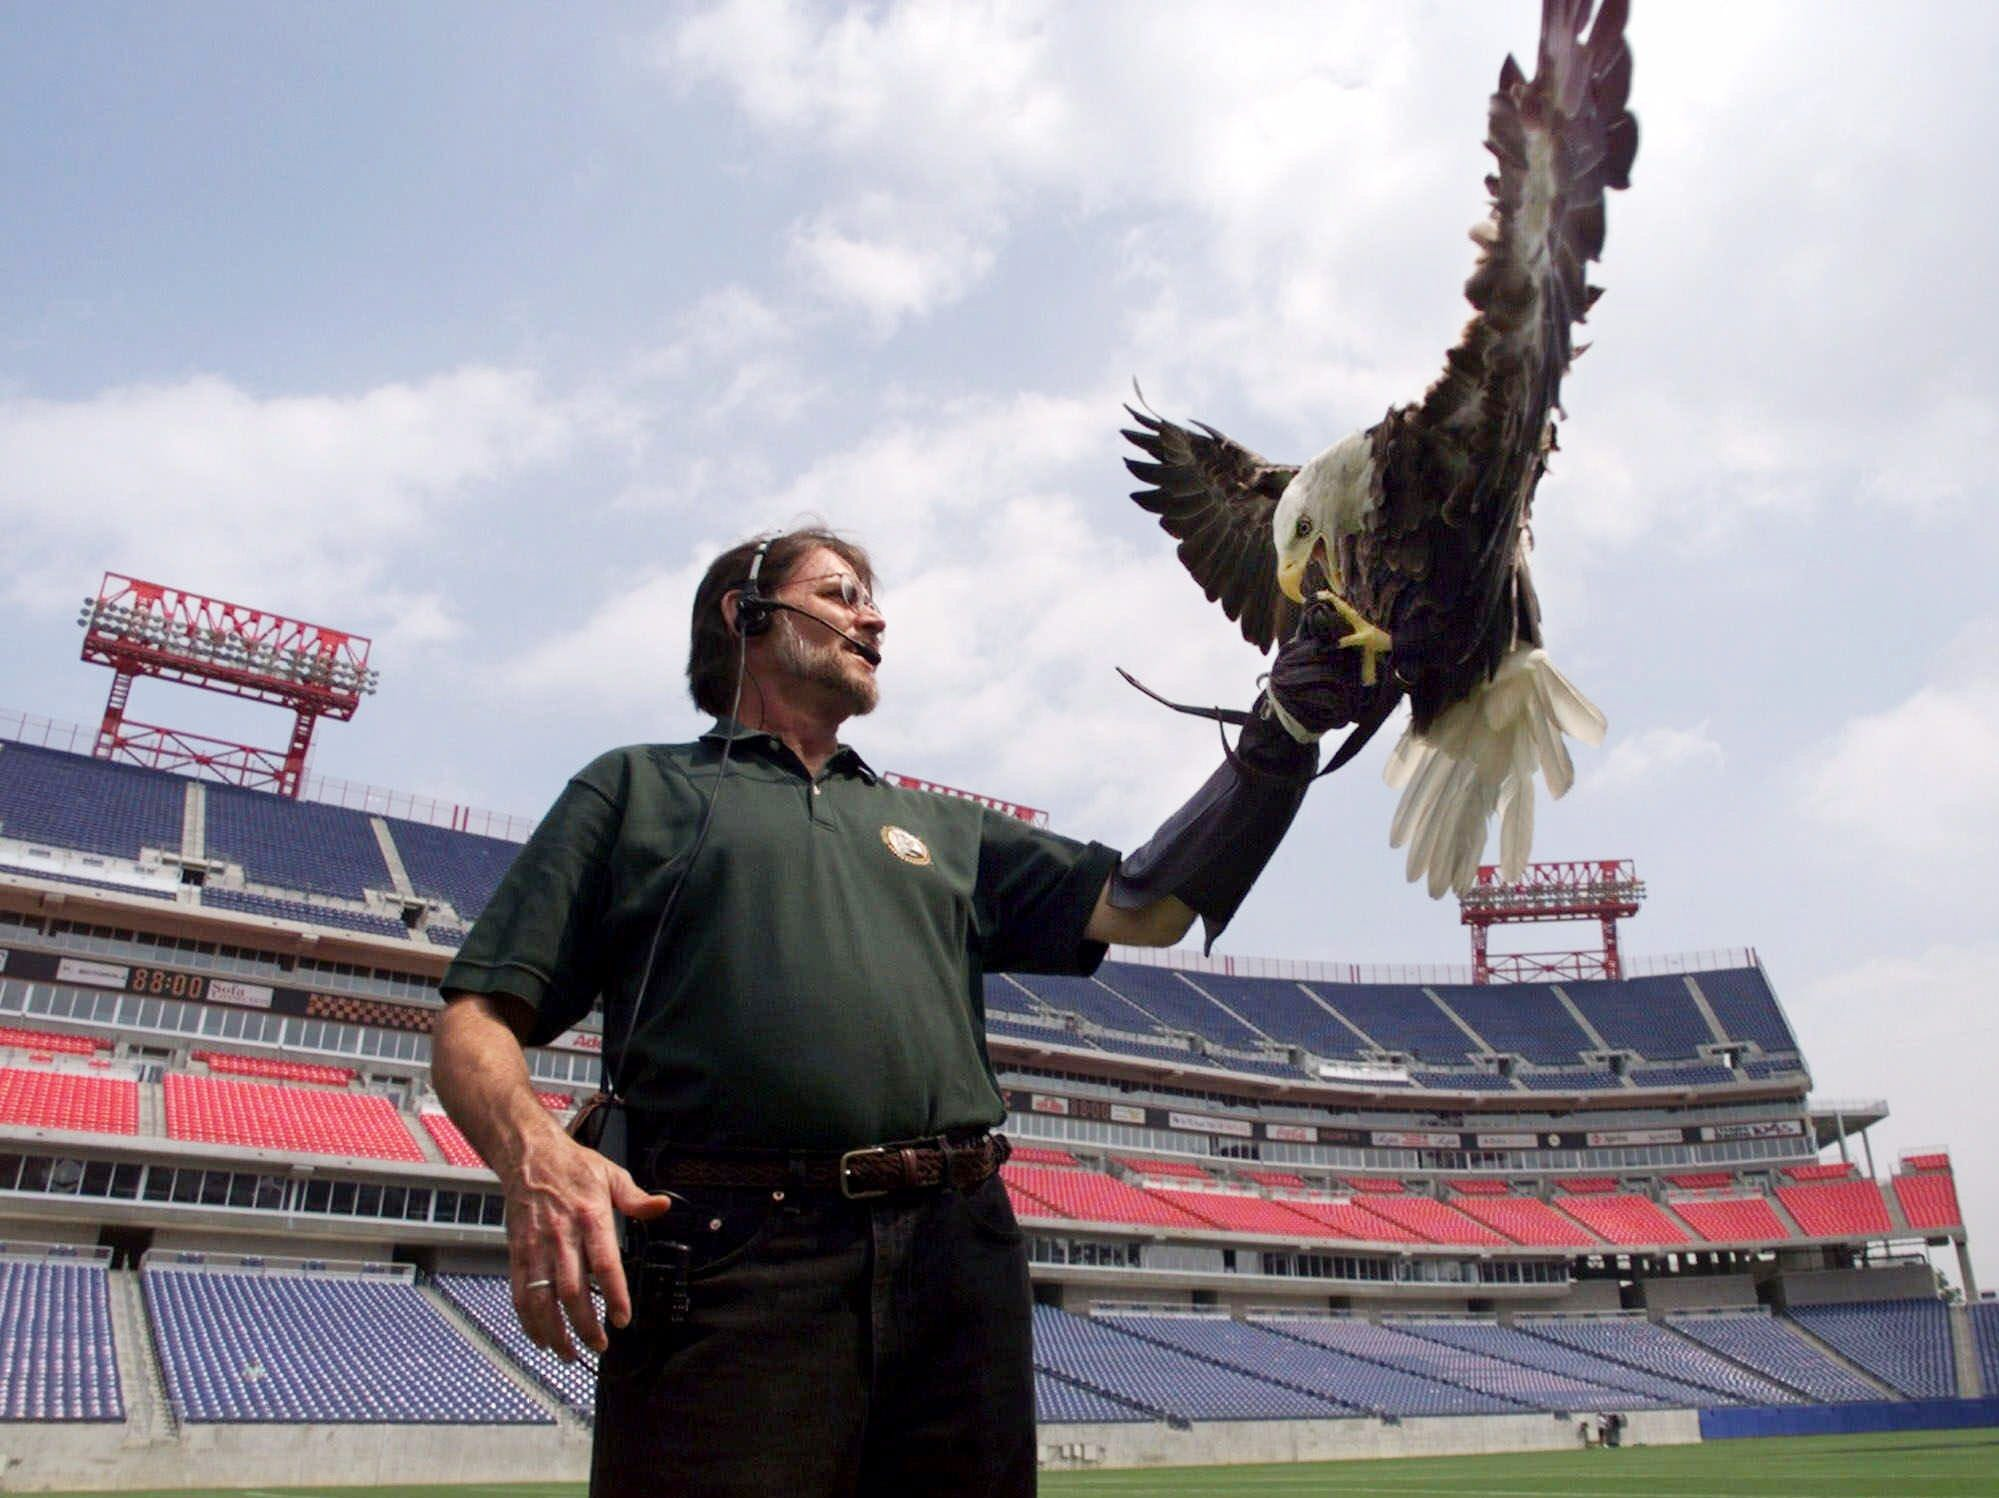 Challenger, an 11-year-old male bald eagle, lands on the hand of Al Cecere as they practice at Adelphia Coliseum in Nashville Aug. 26, 1999. Challenger and Cecere will be part of the pre-game show of the Atlanta Falcons-Tennessee Titans preseason game.